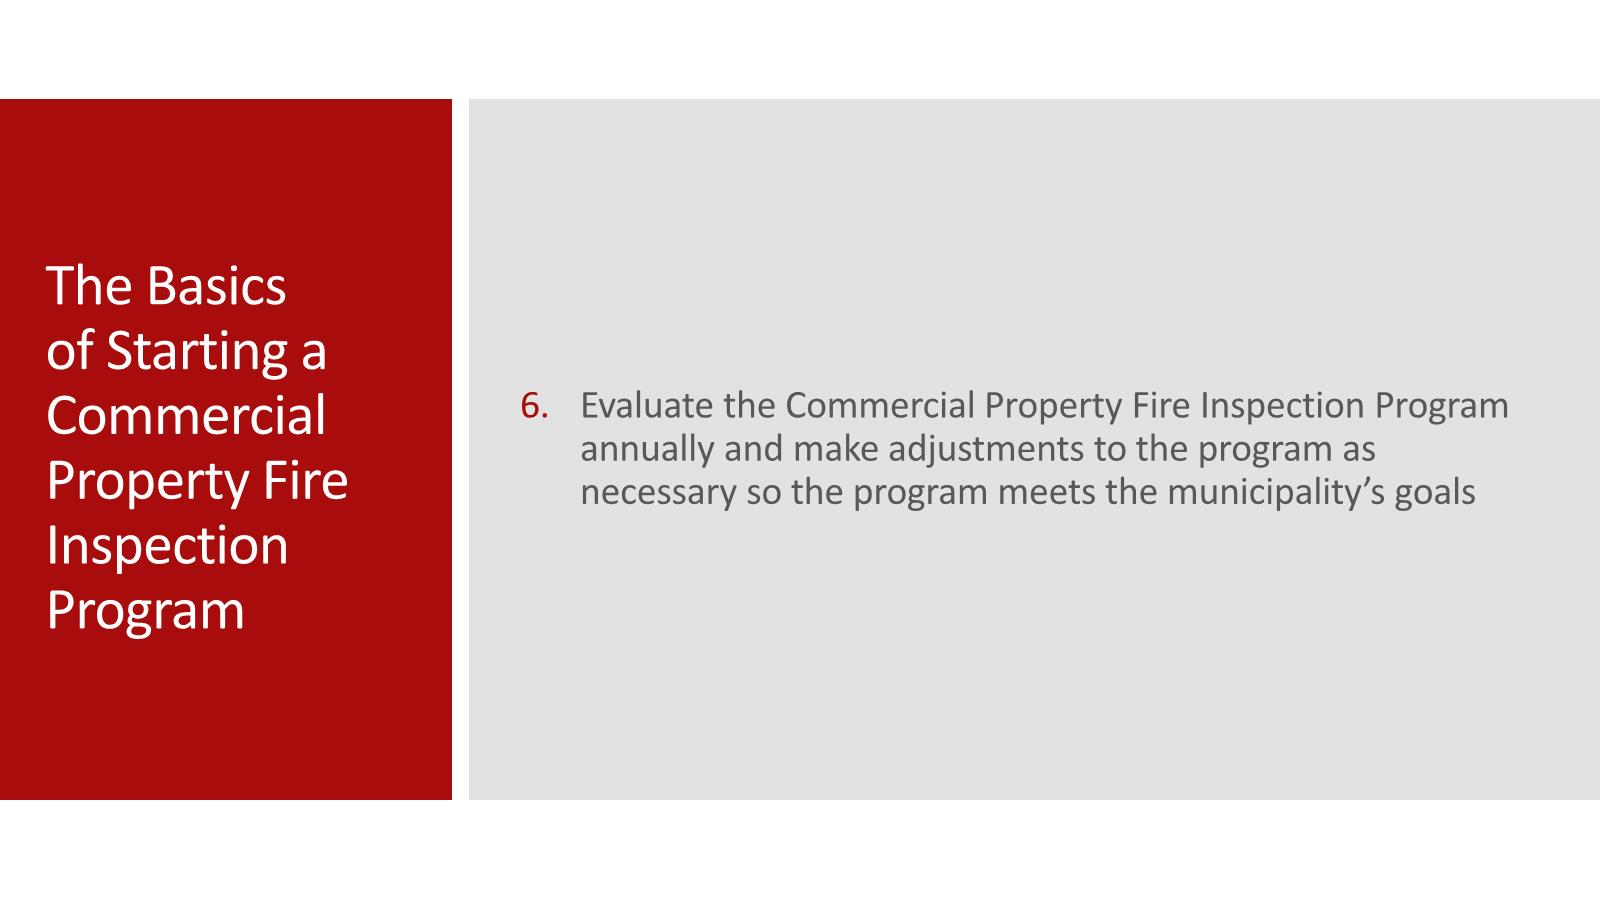 Commercial-Property-Fire-Inspections Page 022.jpg